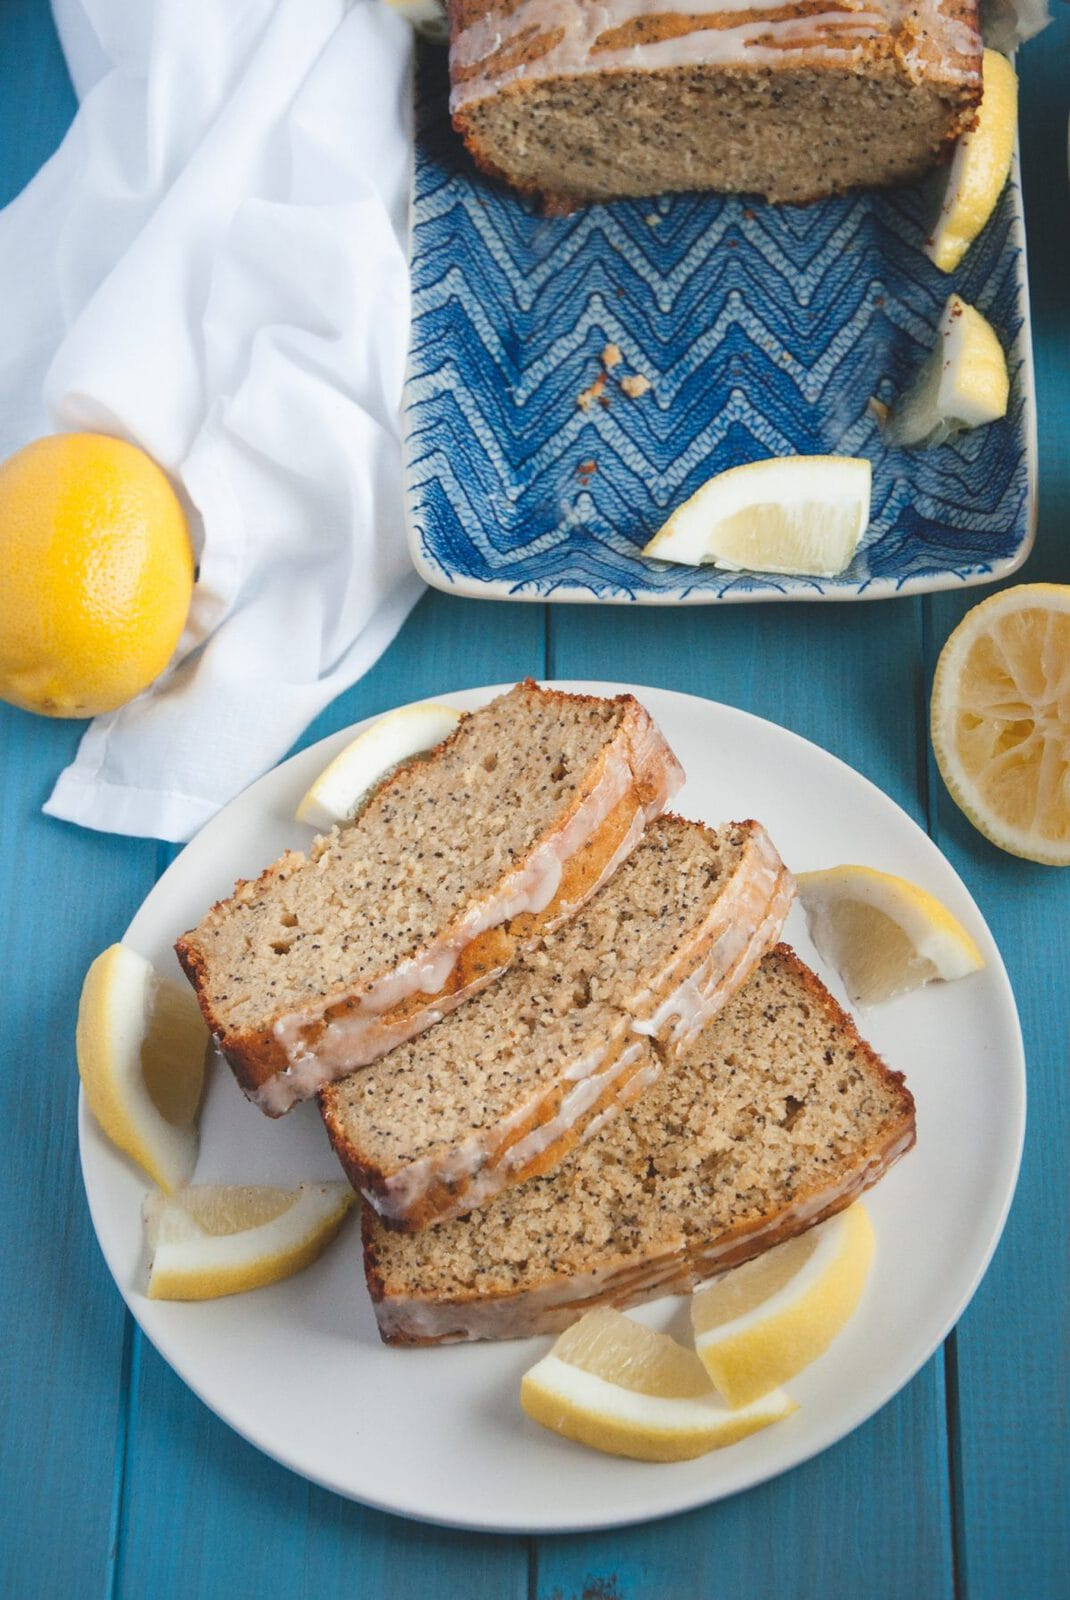 Plate with Whole Wheat Lemon Poppy Seed Bread with glaze